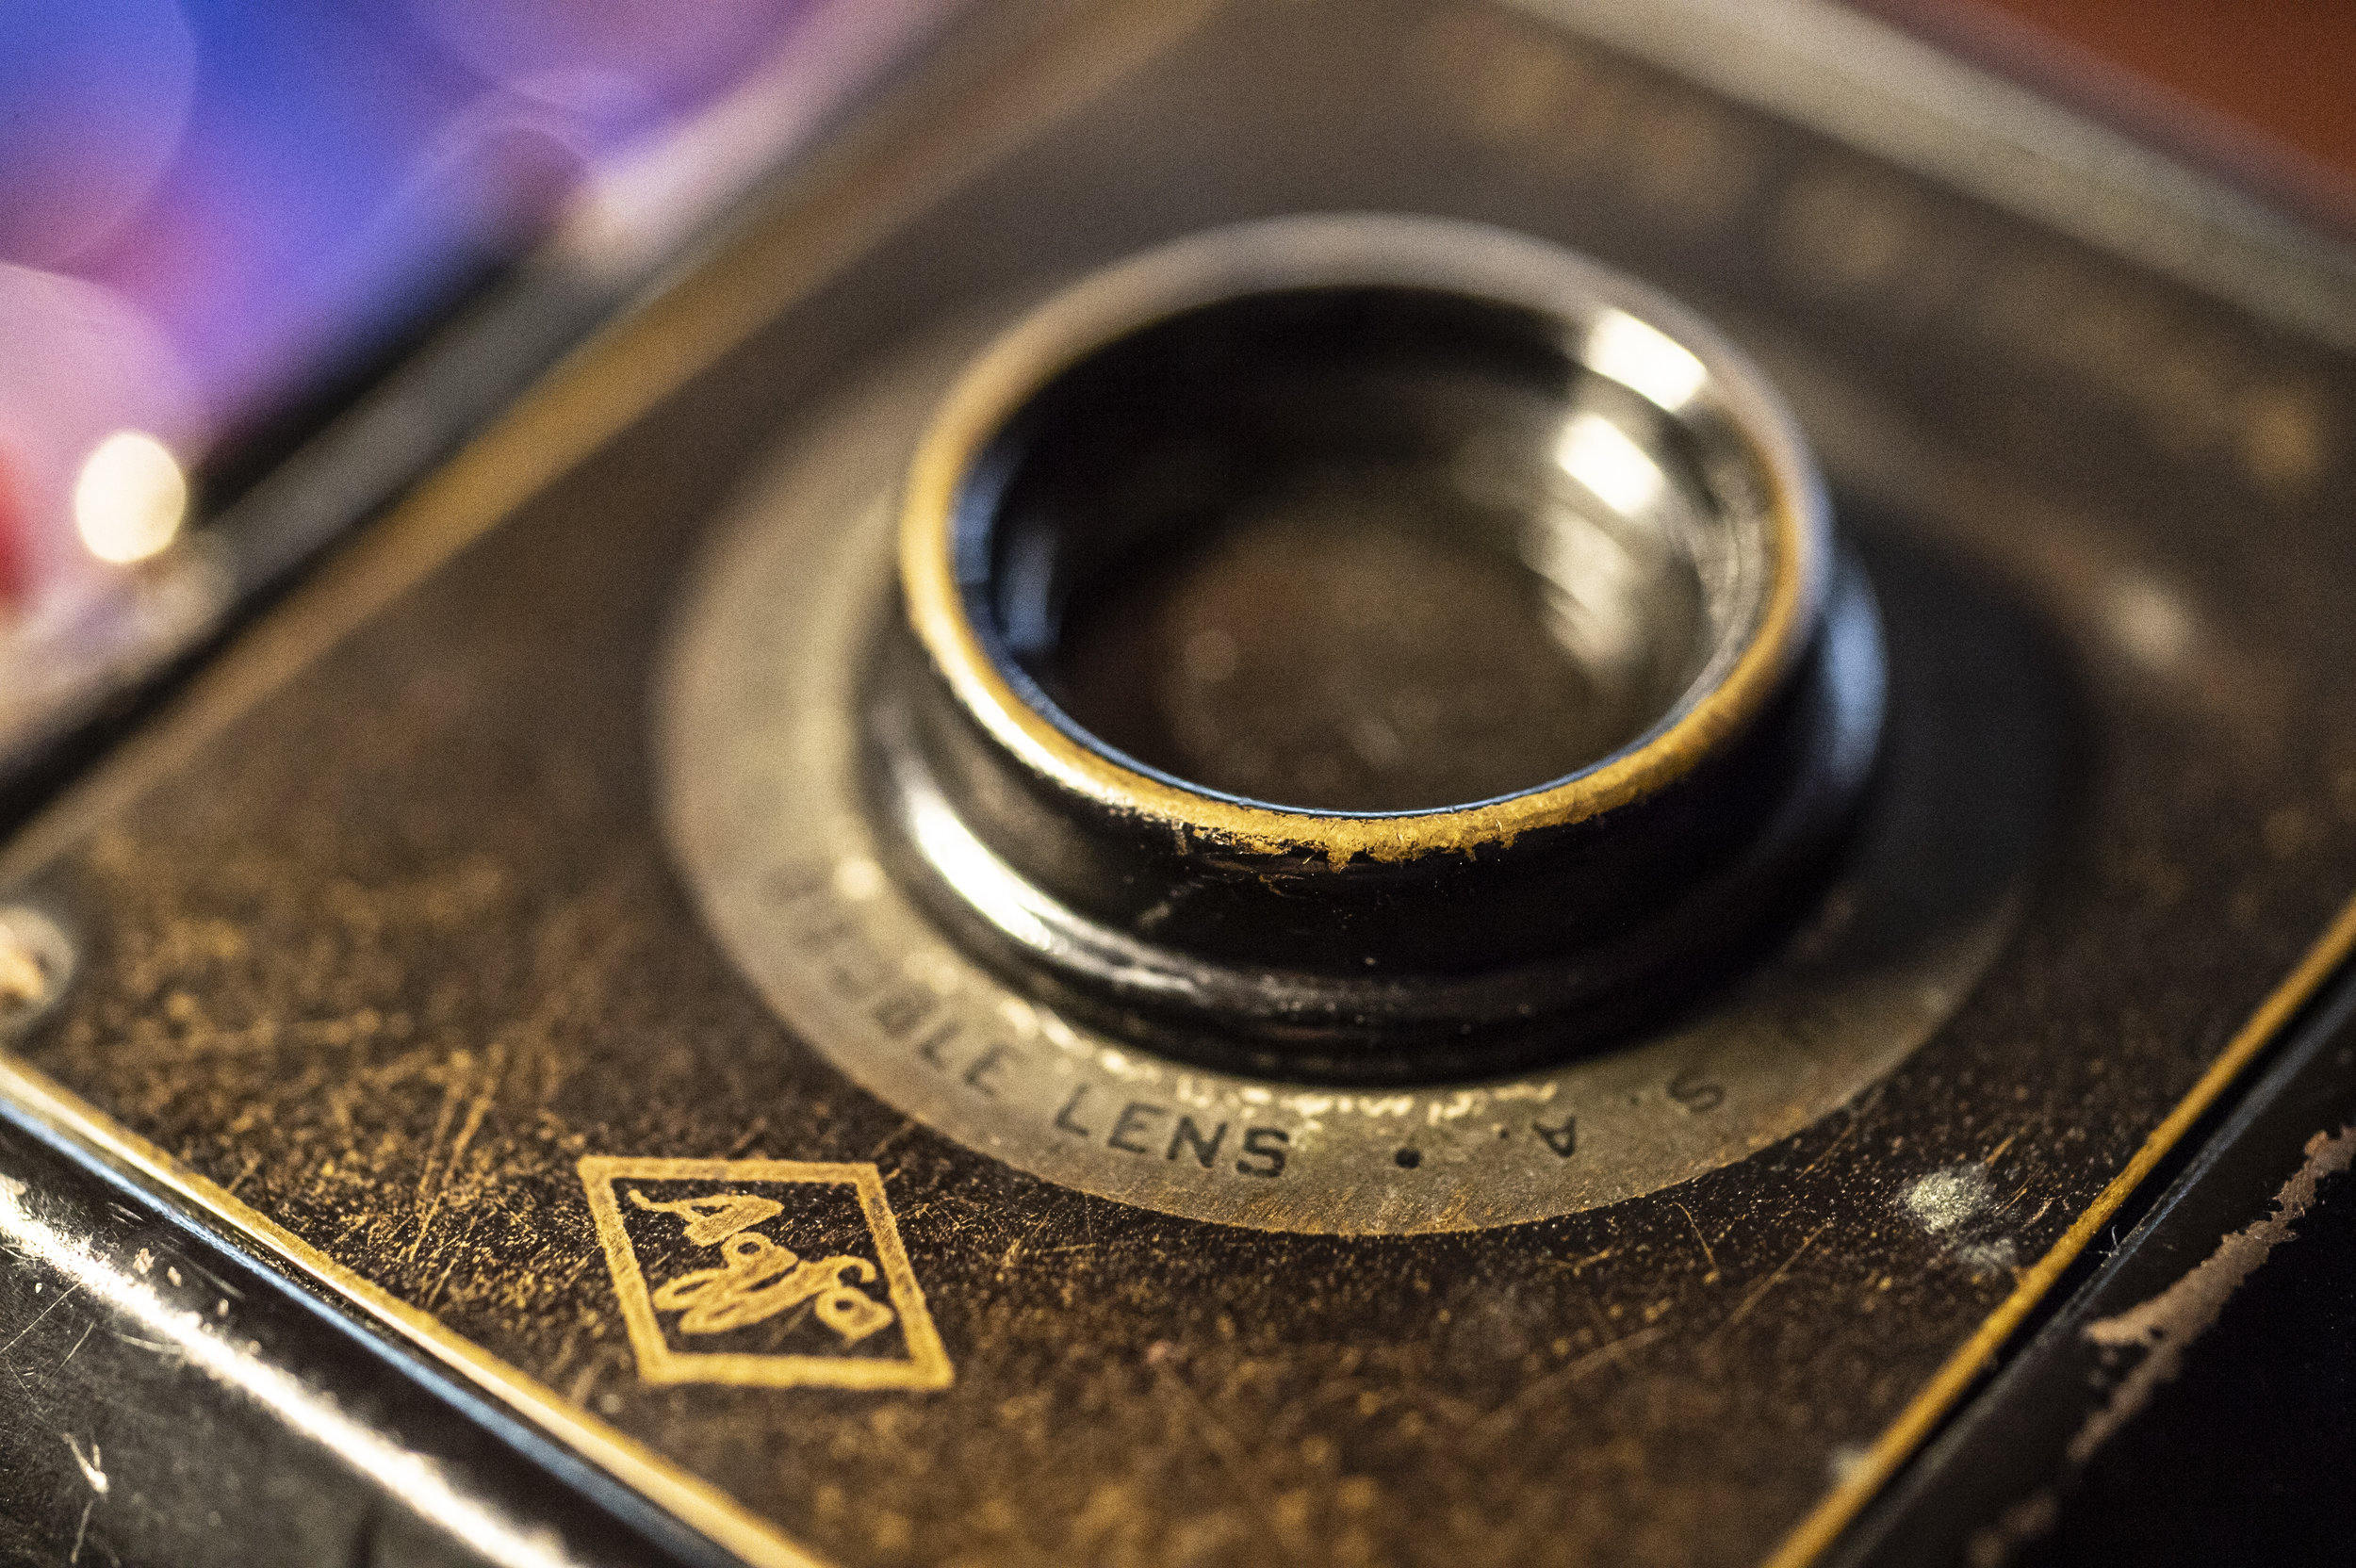 Agfa PD-16 Clipper macro photo 55mm 2.8 by ZShare Photovisions